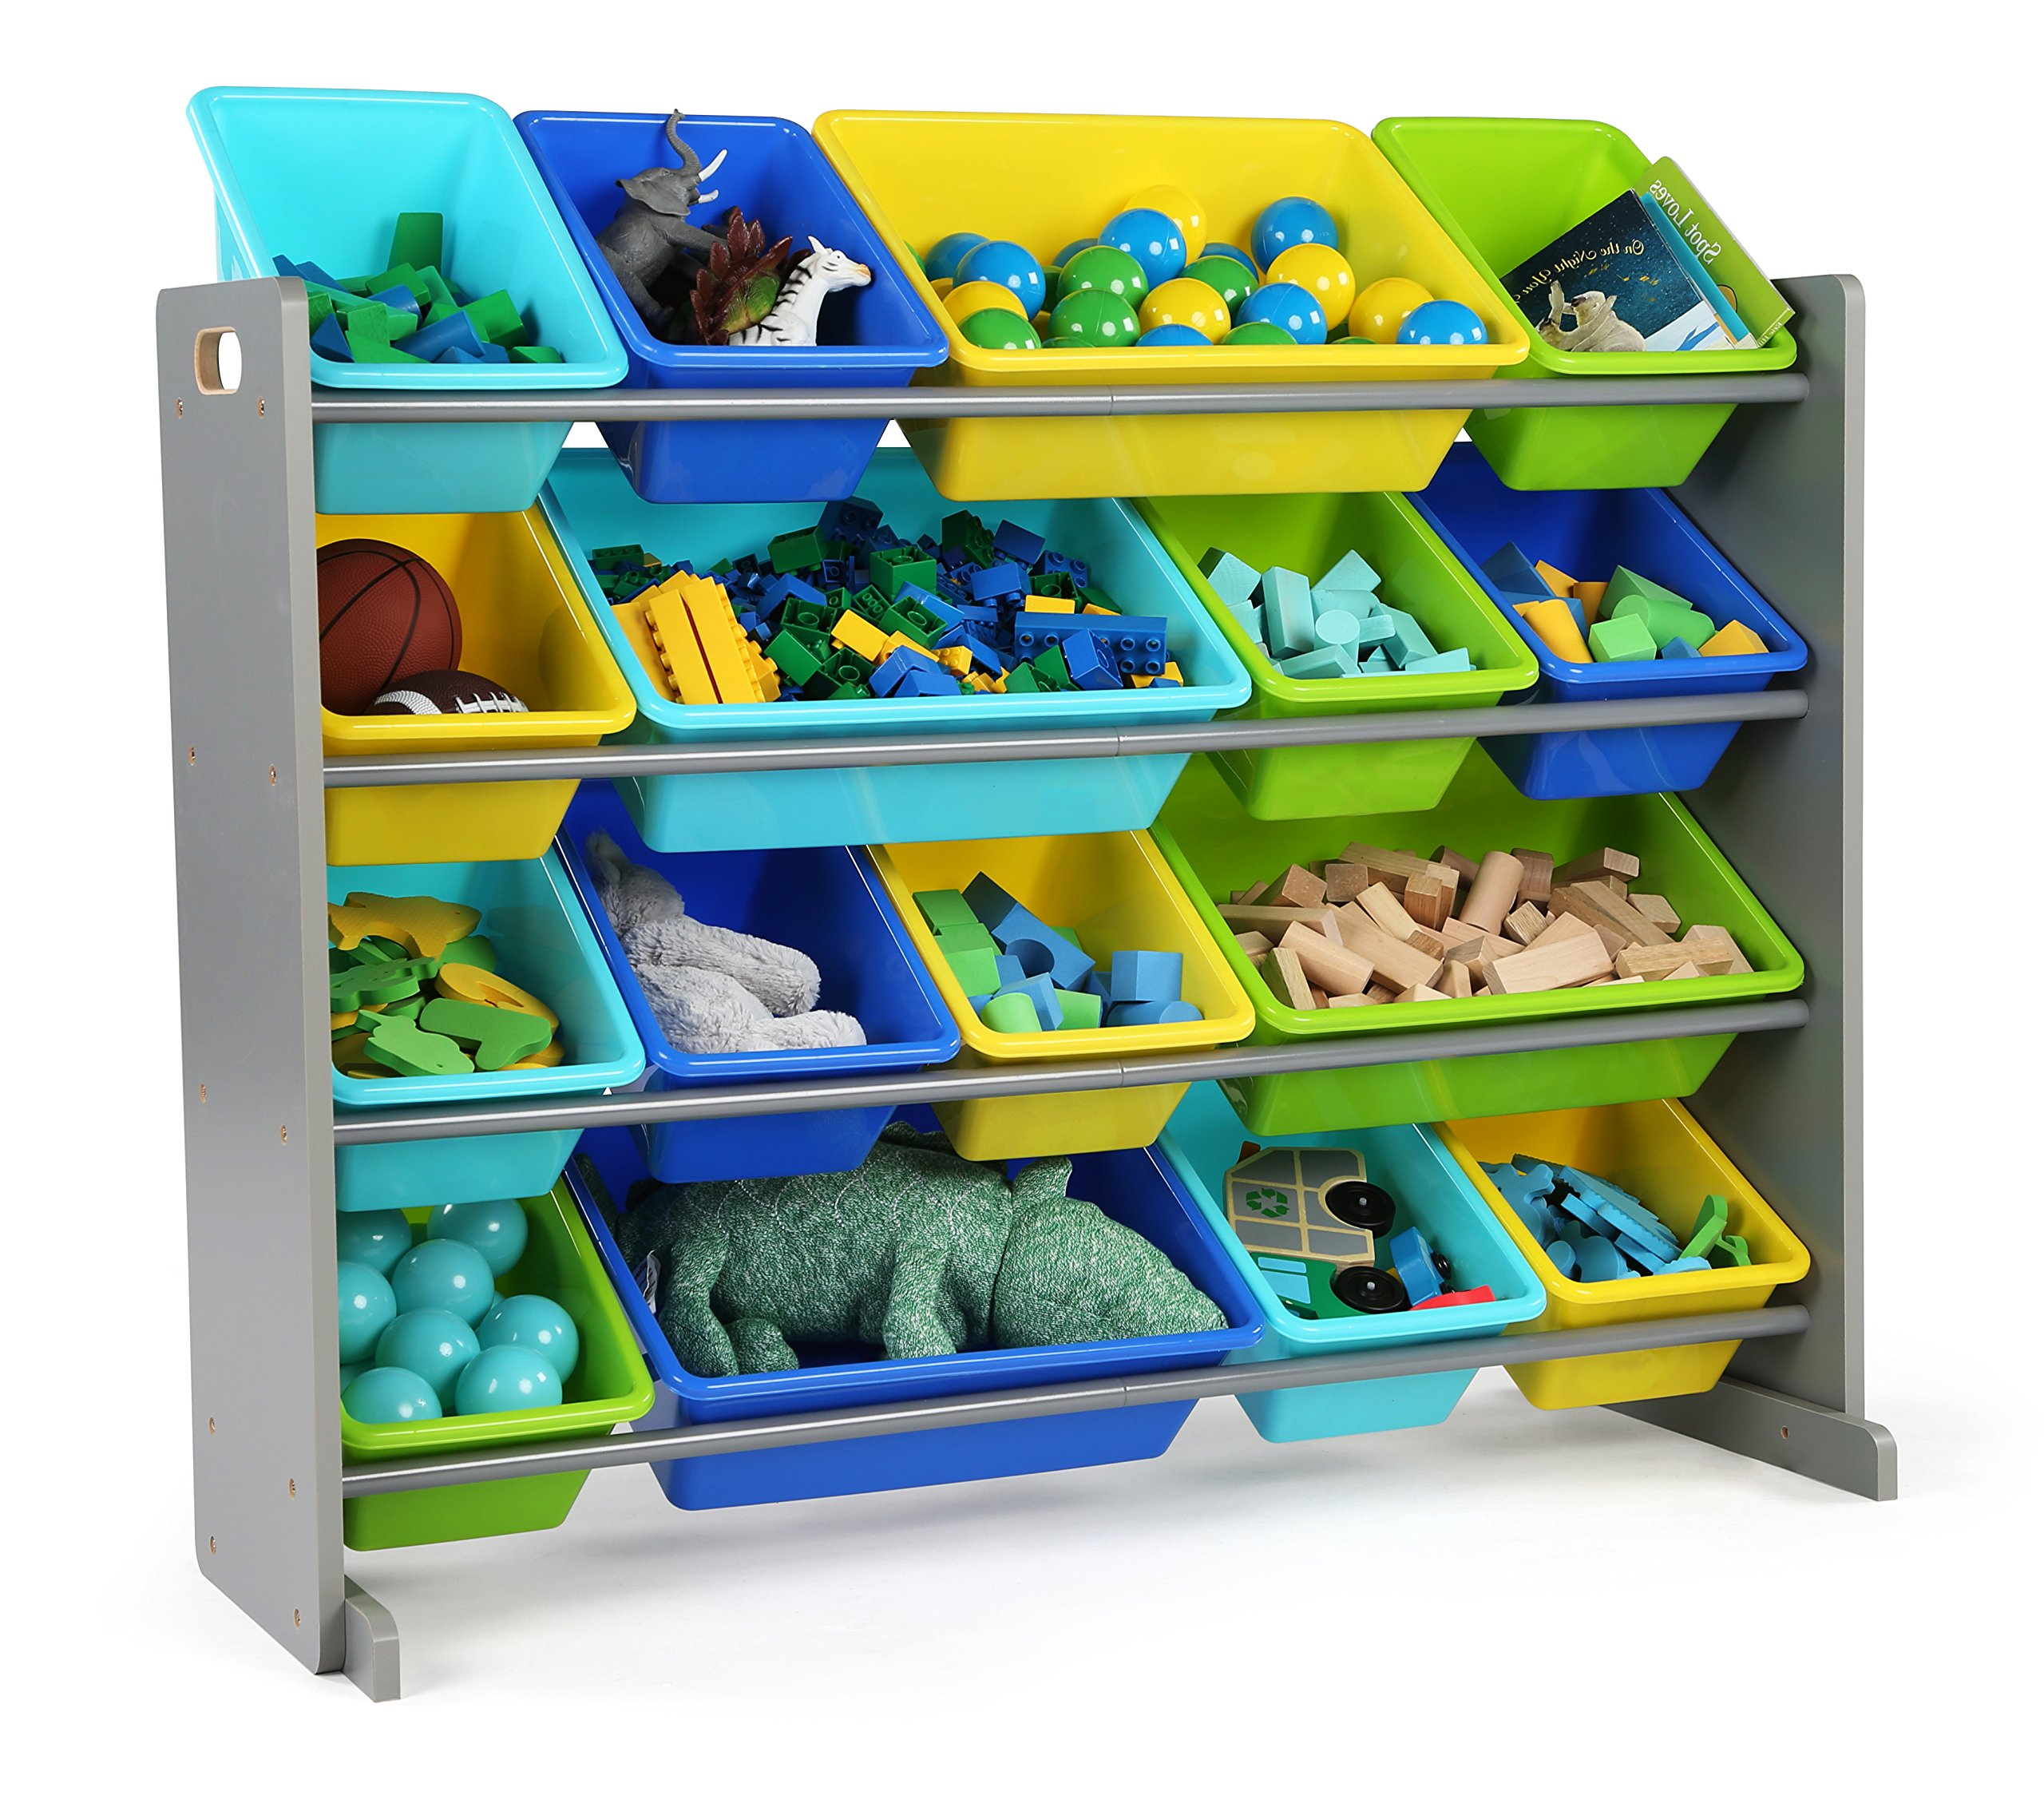 Tot Tutors WO498 Elements Collection Wood Toy Storage Organizer, X-Large, Grey/Blue/Green/Yellow by Tot Tutors